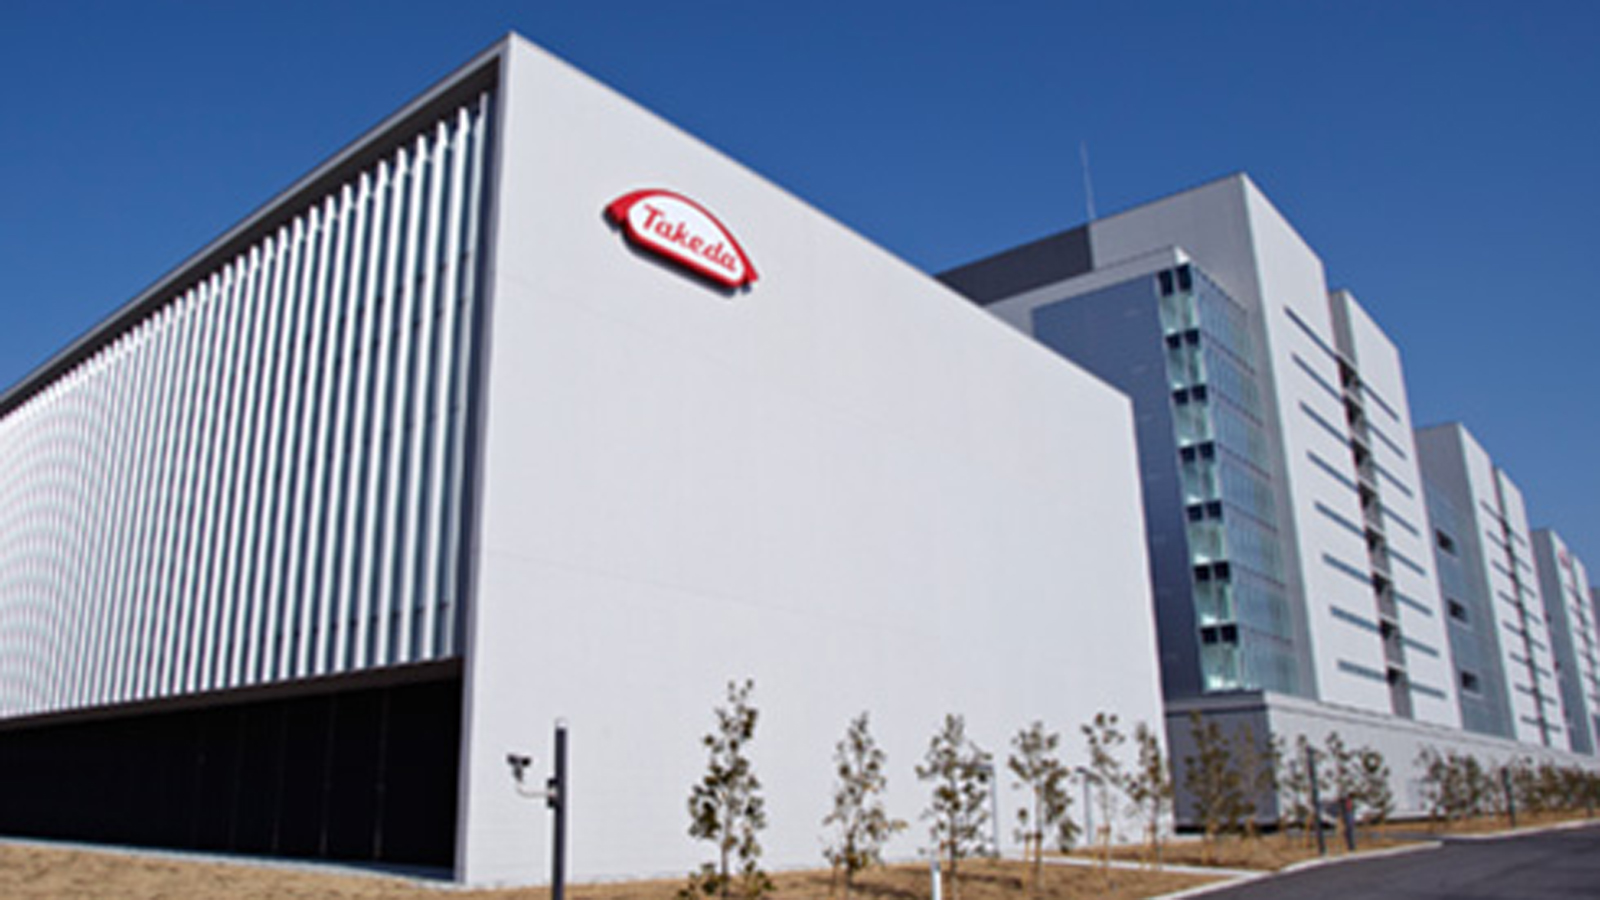 The History of Takeda - 2000 to the Present